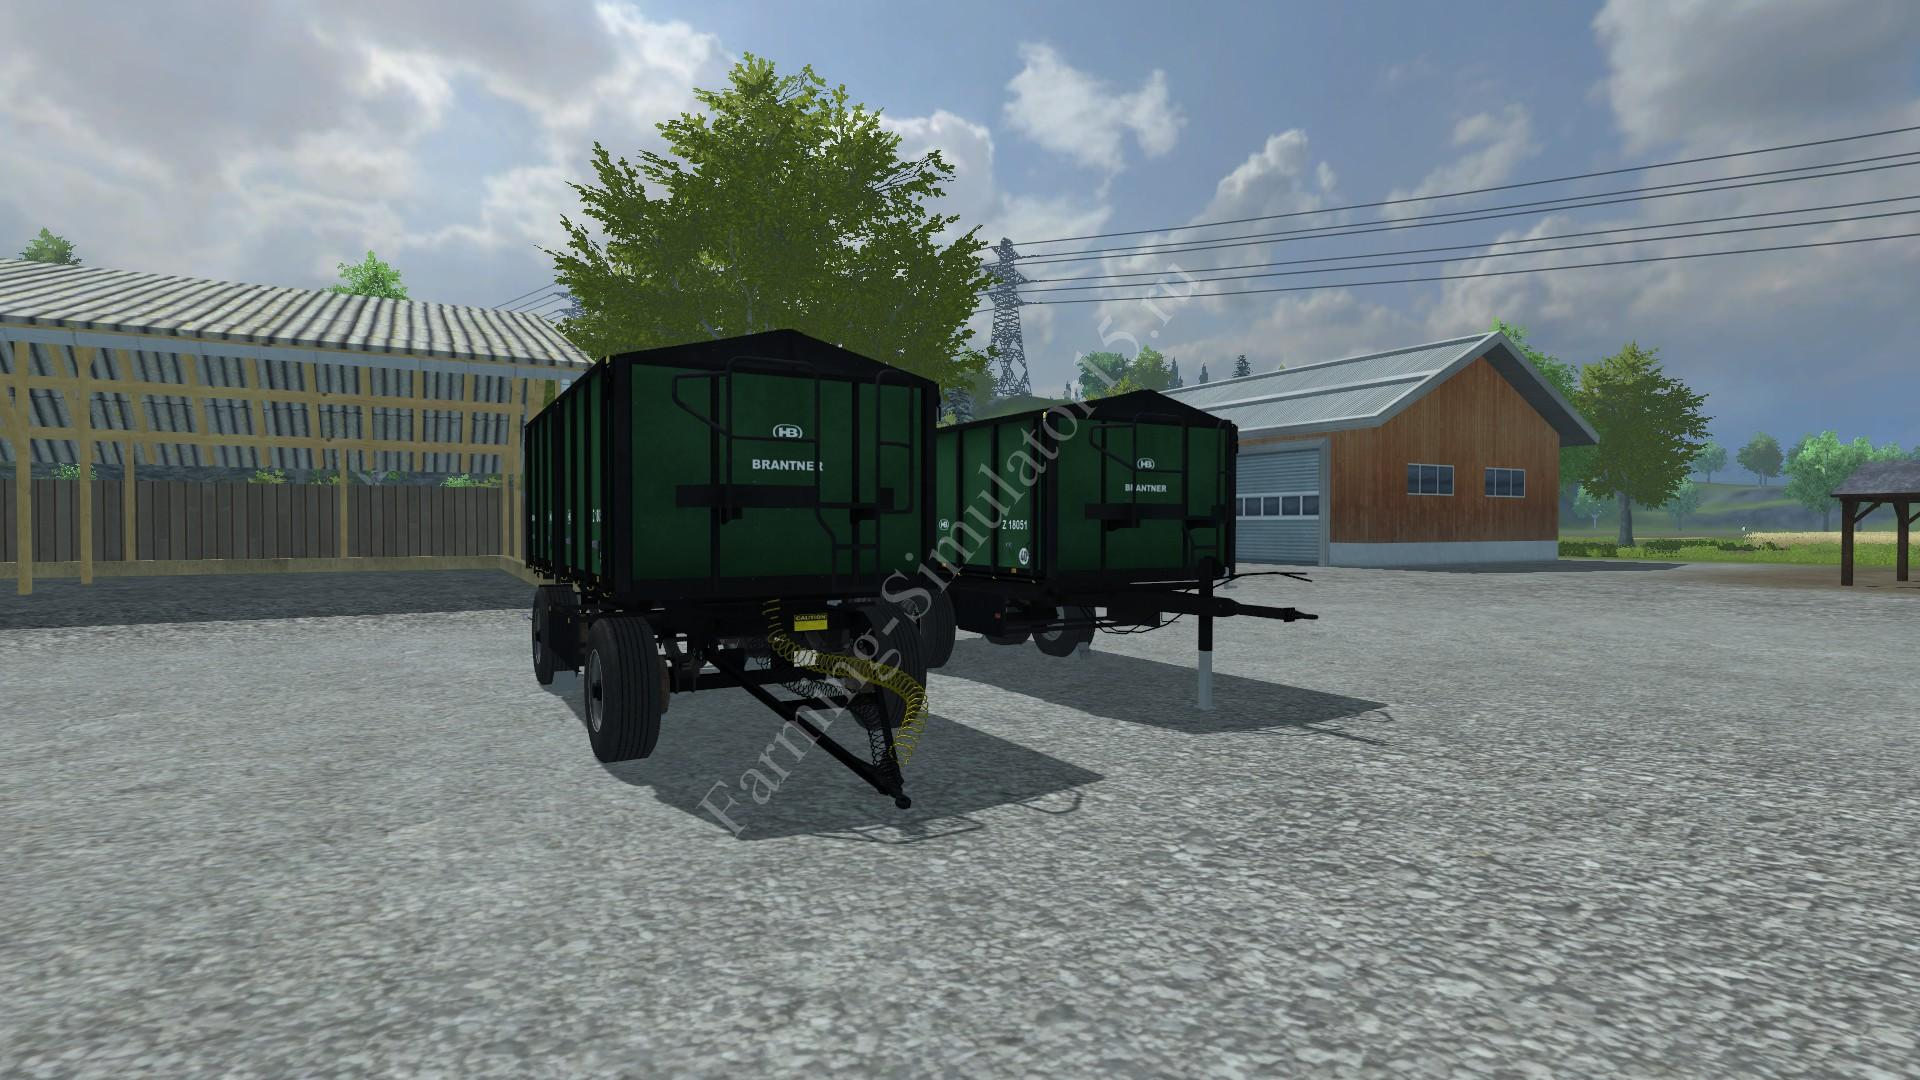 Мод двуосного прицепа BRANTNER Z18051 PACK TRAILER V1.0 Farming Simulator 2013, Farming Simulator 13